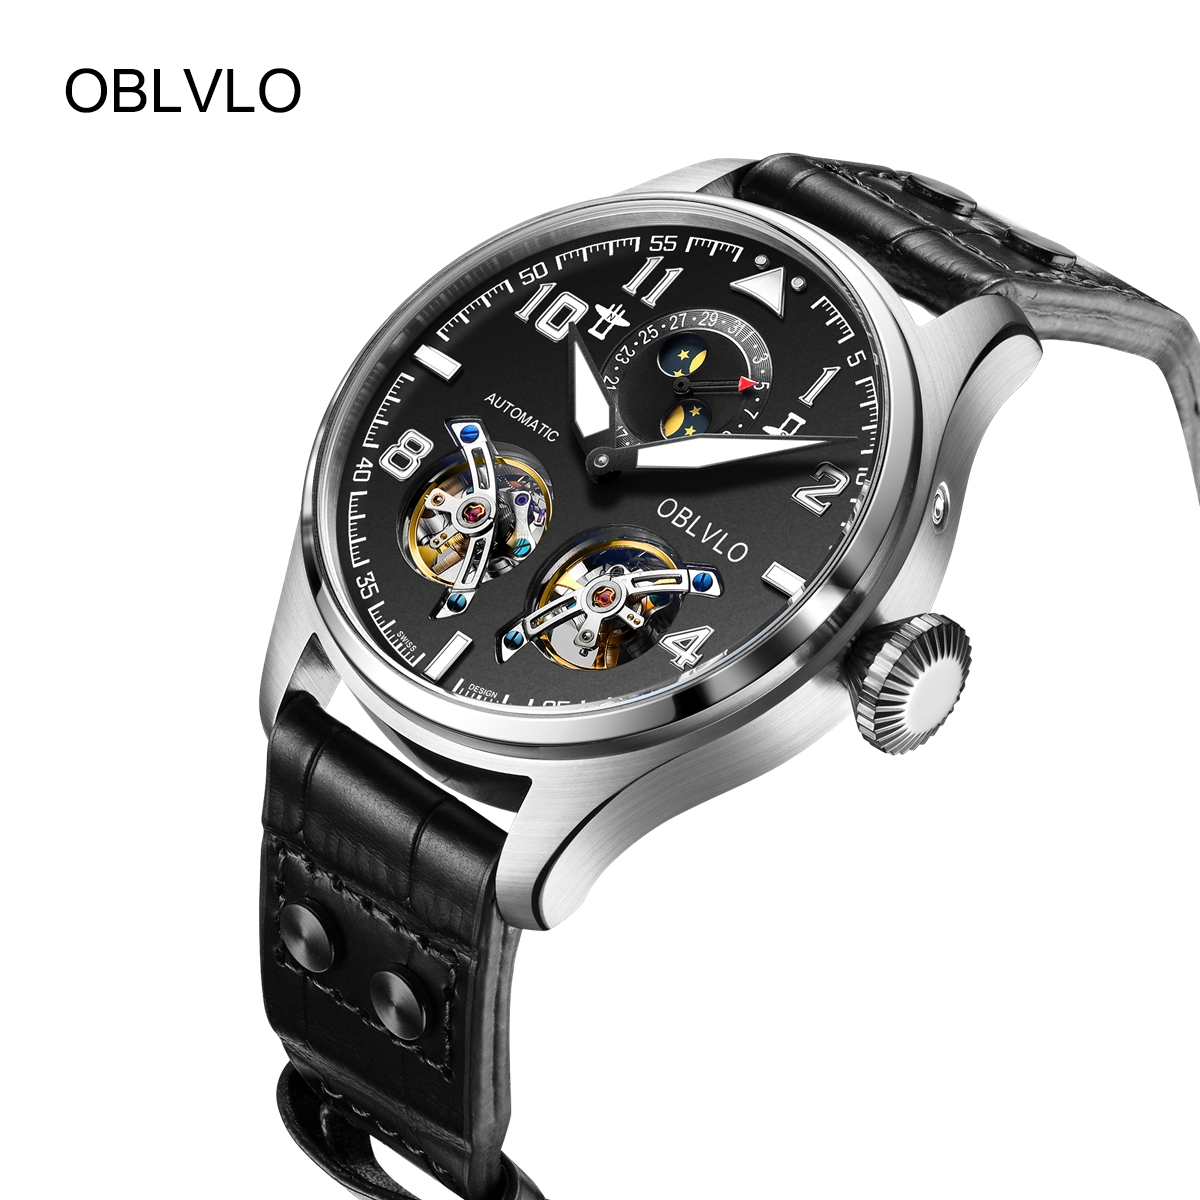 OBLVLO Mens Fashion Watches Steel Automatic Watch Date Tourbillon Leather Strap Watch OBL8232-YBB